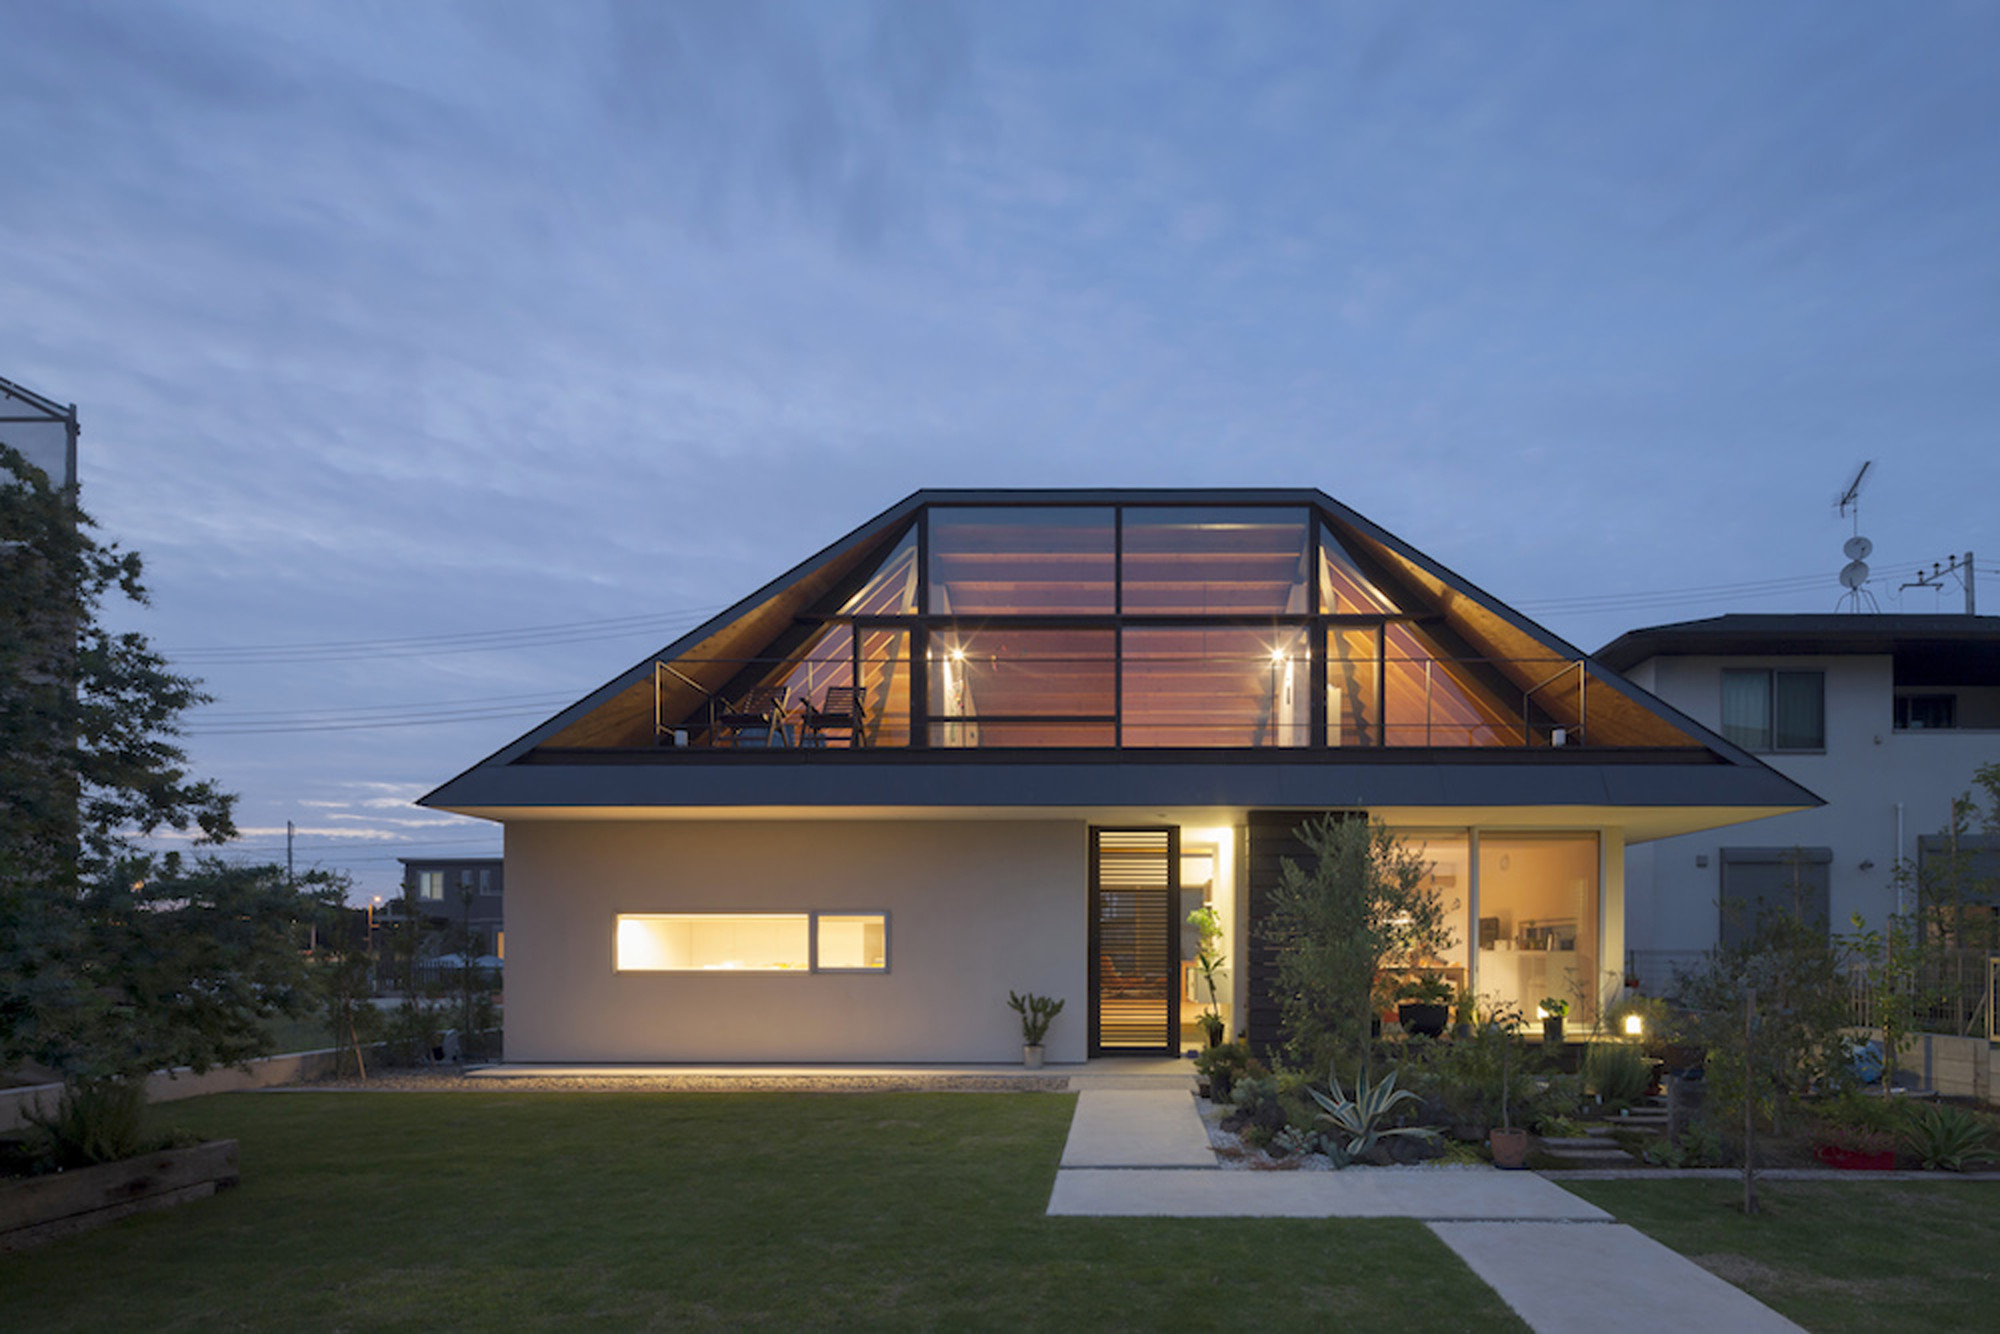 House With A Large Hipped Roof  Naoi Architecture